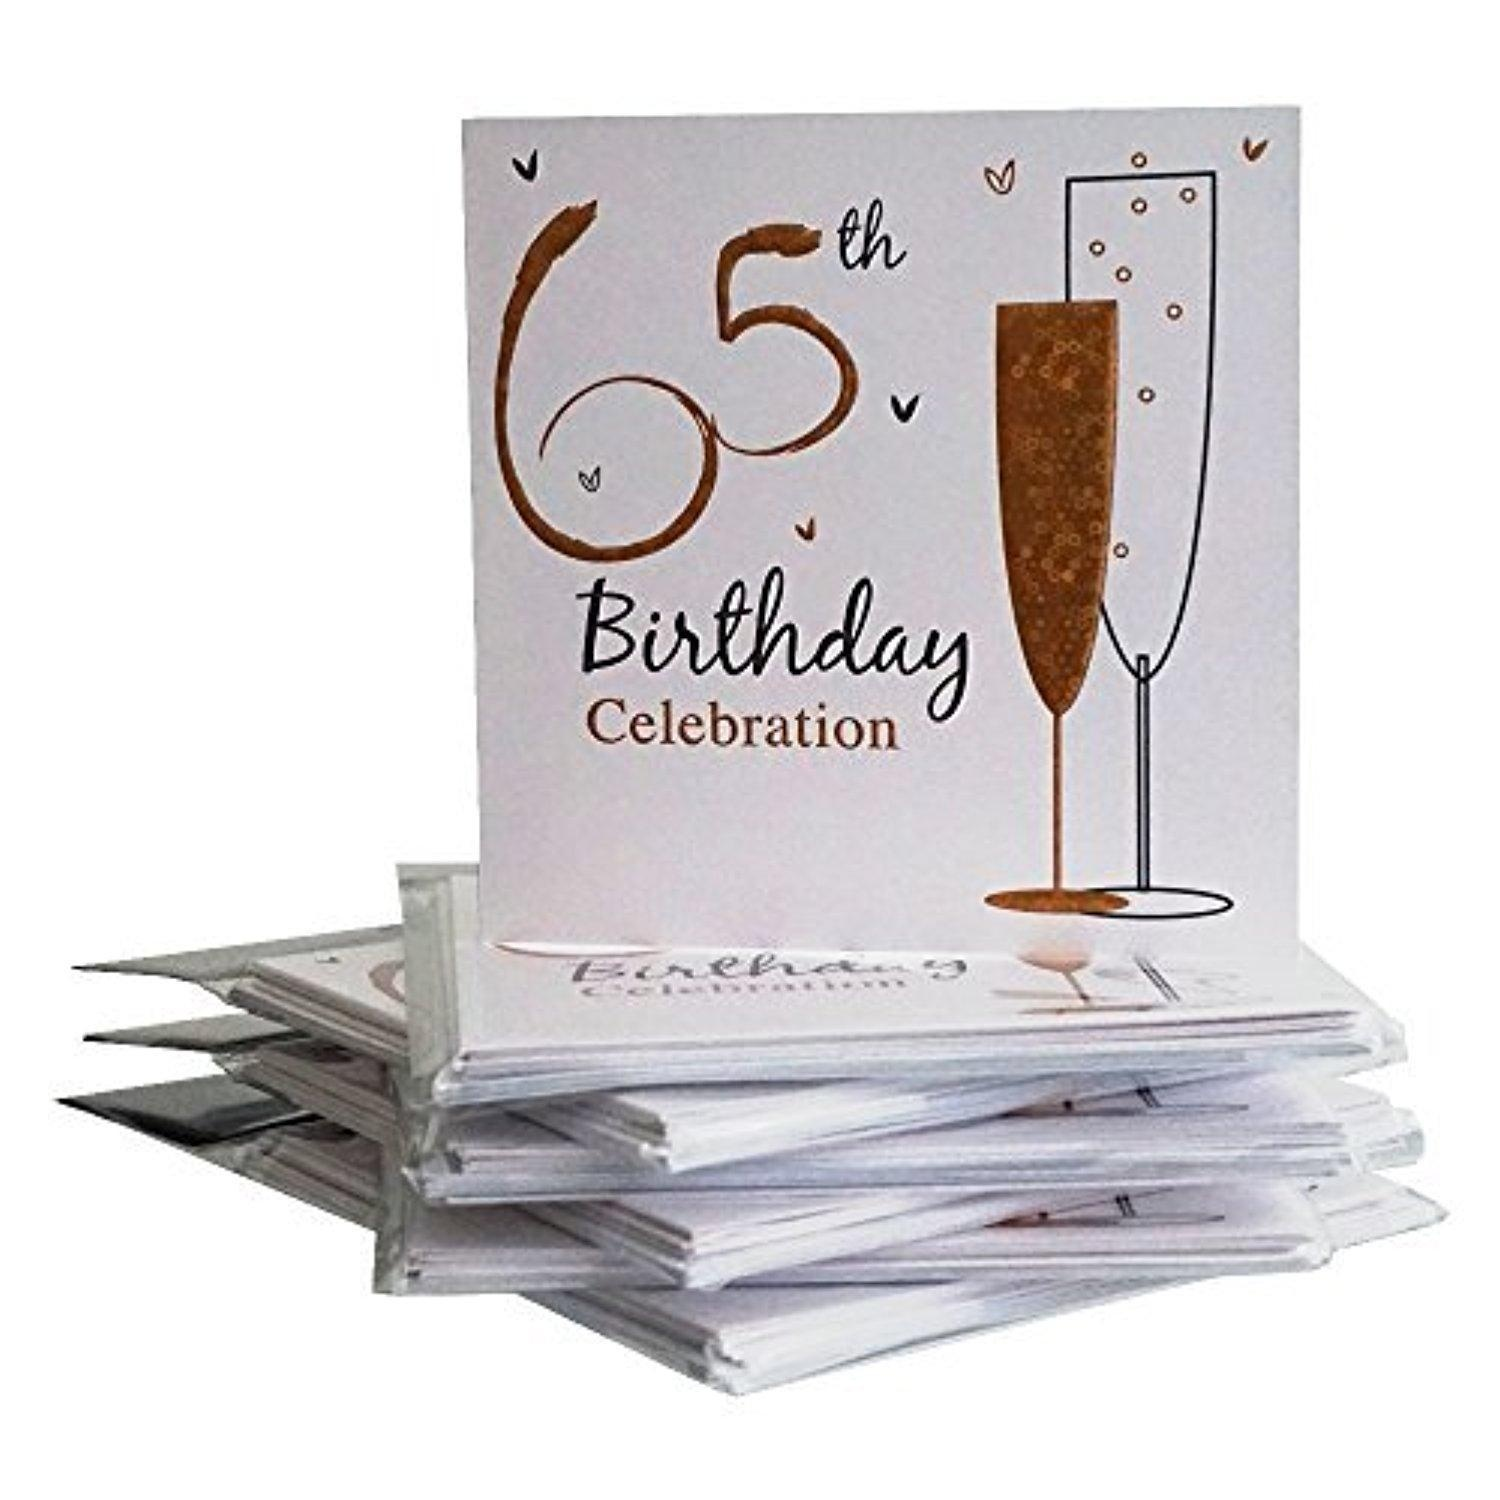 Online Store 65th Birthday Party Invitations 36 Multipack Cards With Envelopes By Simon Elvin